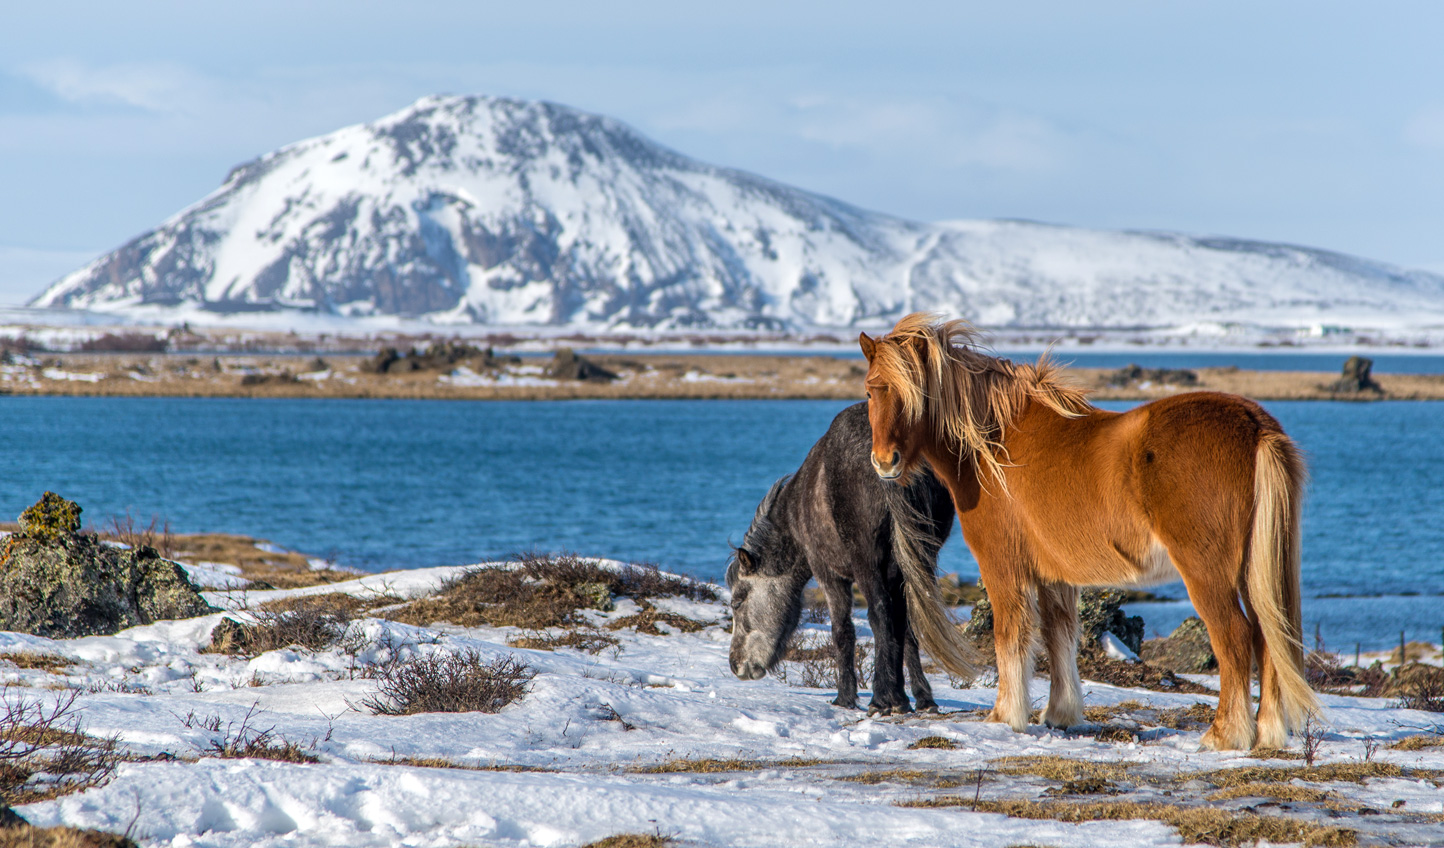 Explore the shores of Lake Myvatn - along with the local wildlife